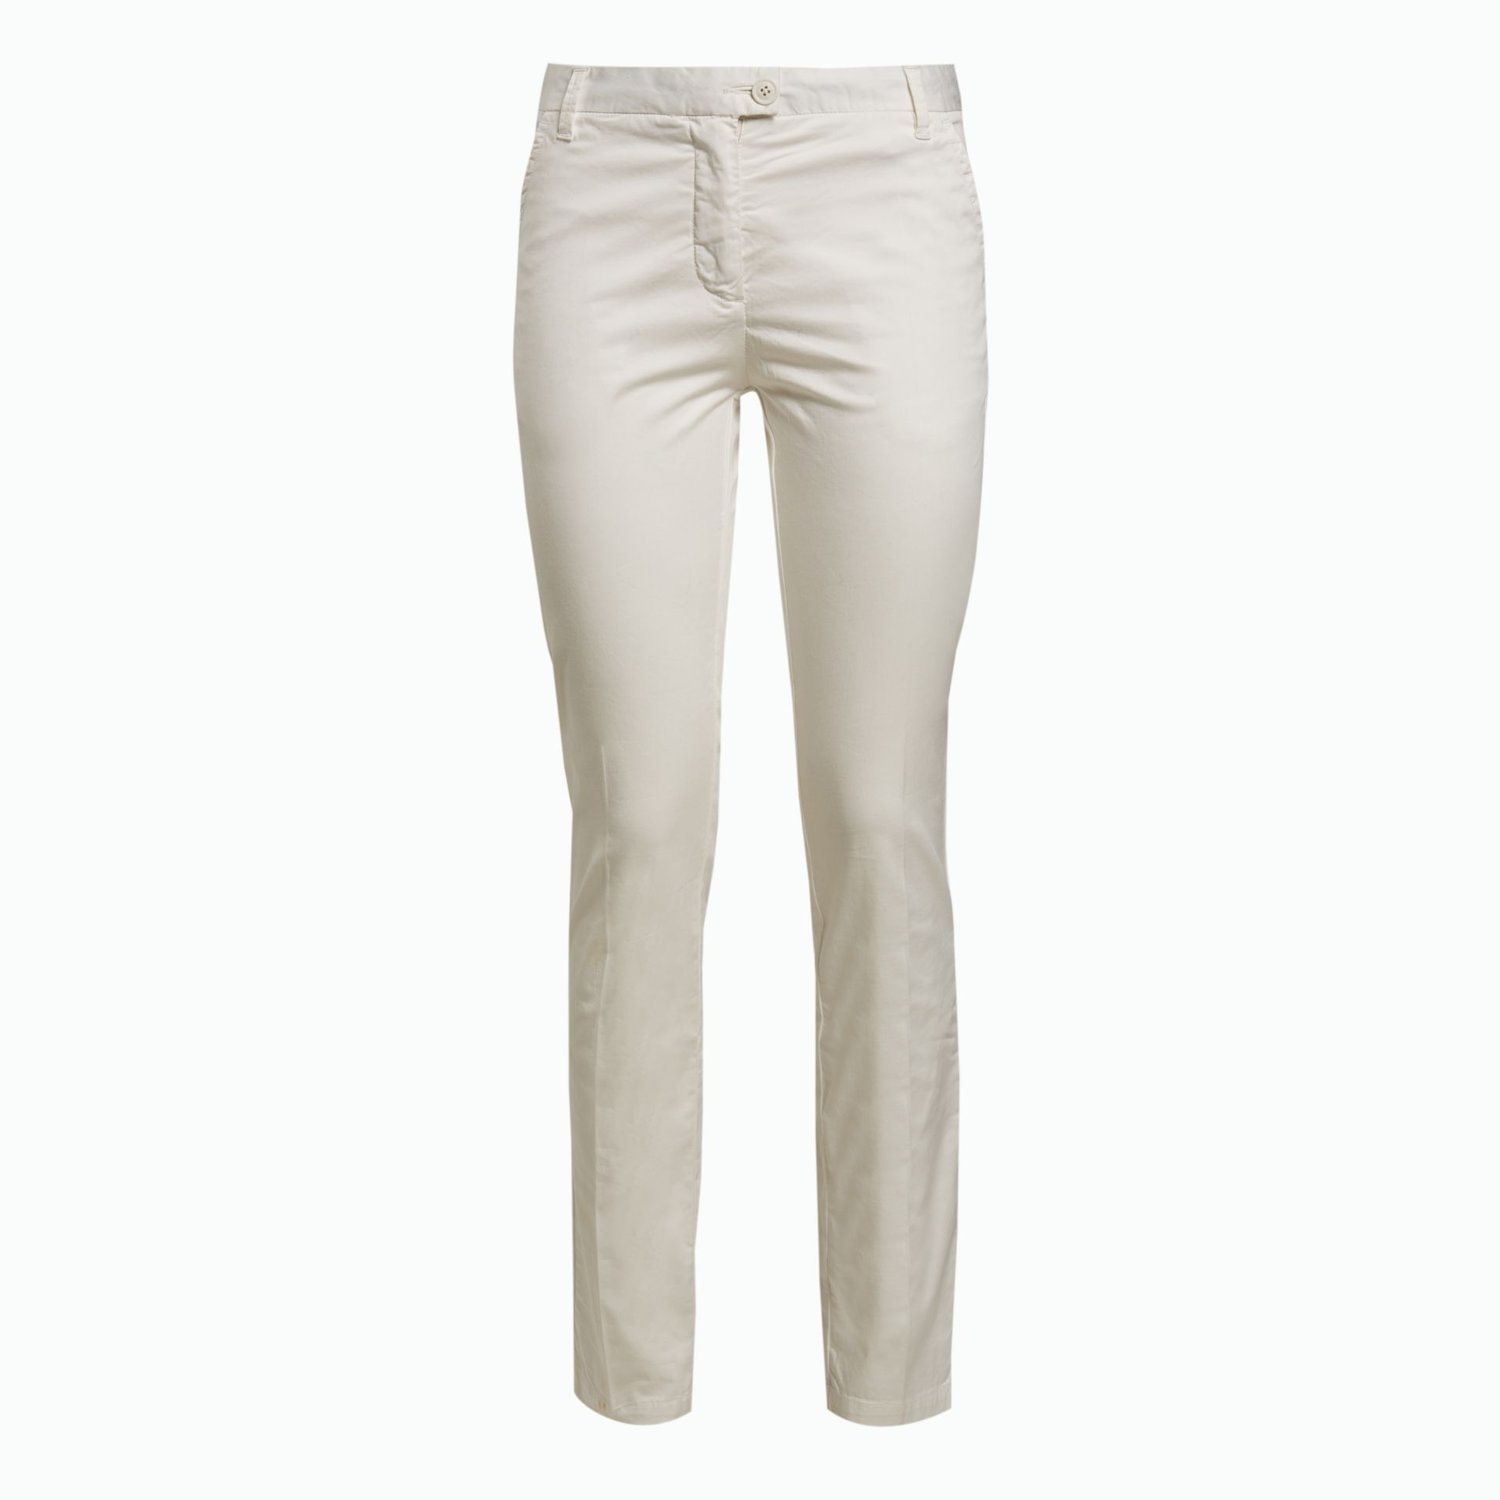 Trouser A2 - Sail White